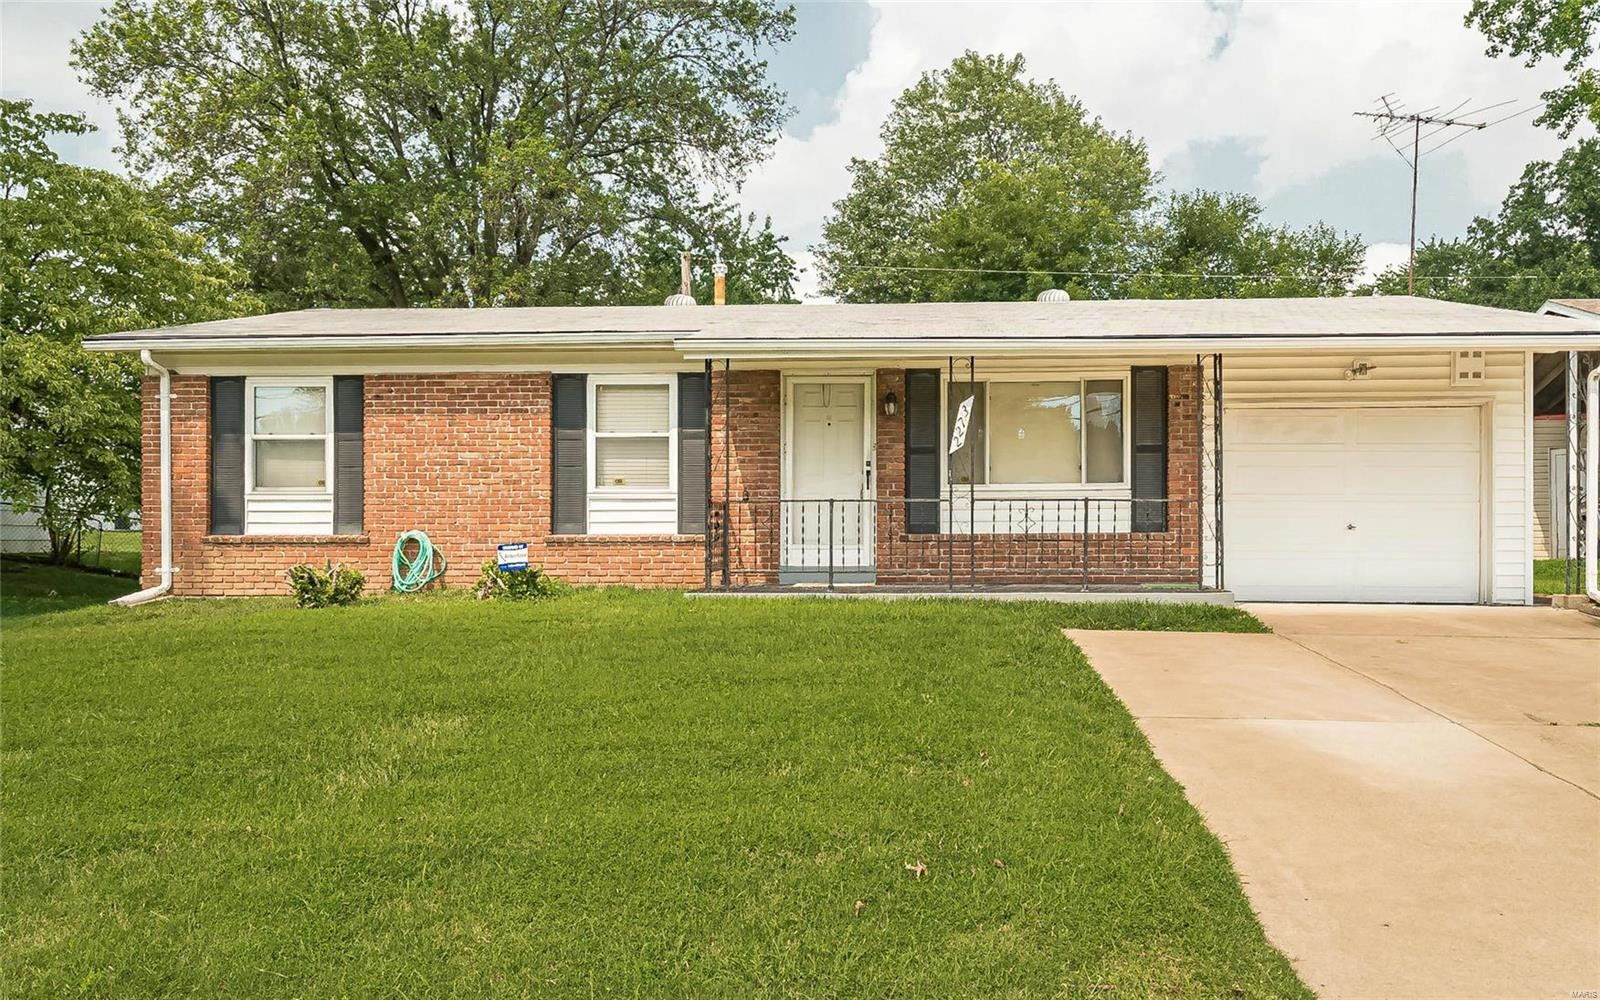 Photo for 2273 Mckelvey, Maryland Heights, MO 63043 (MLS # 21051112)